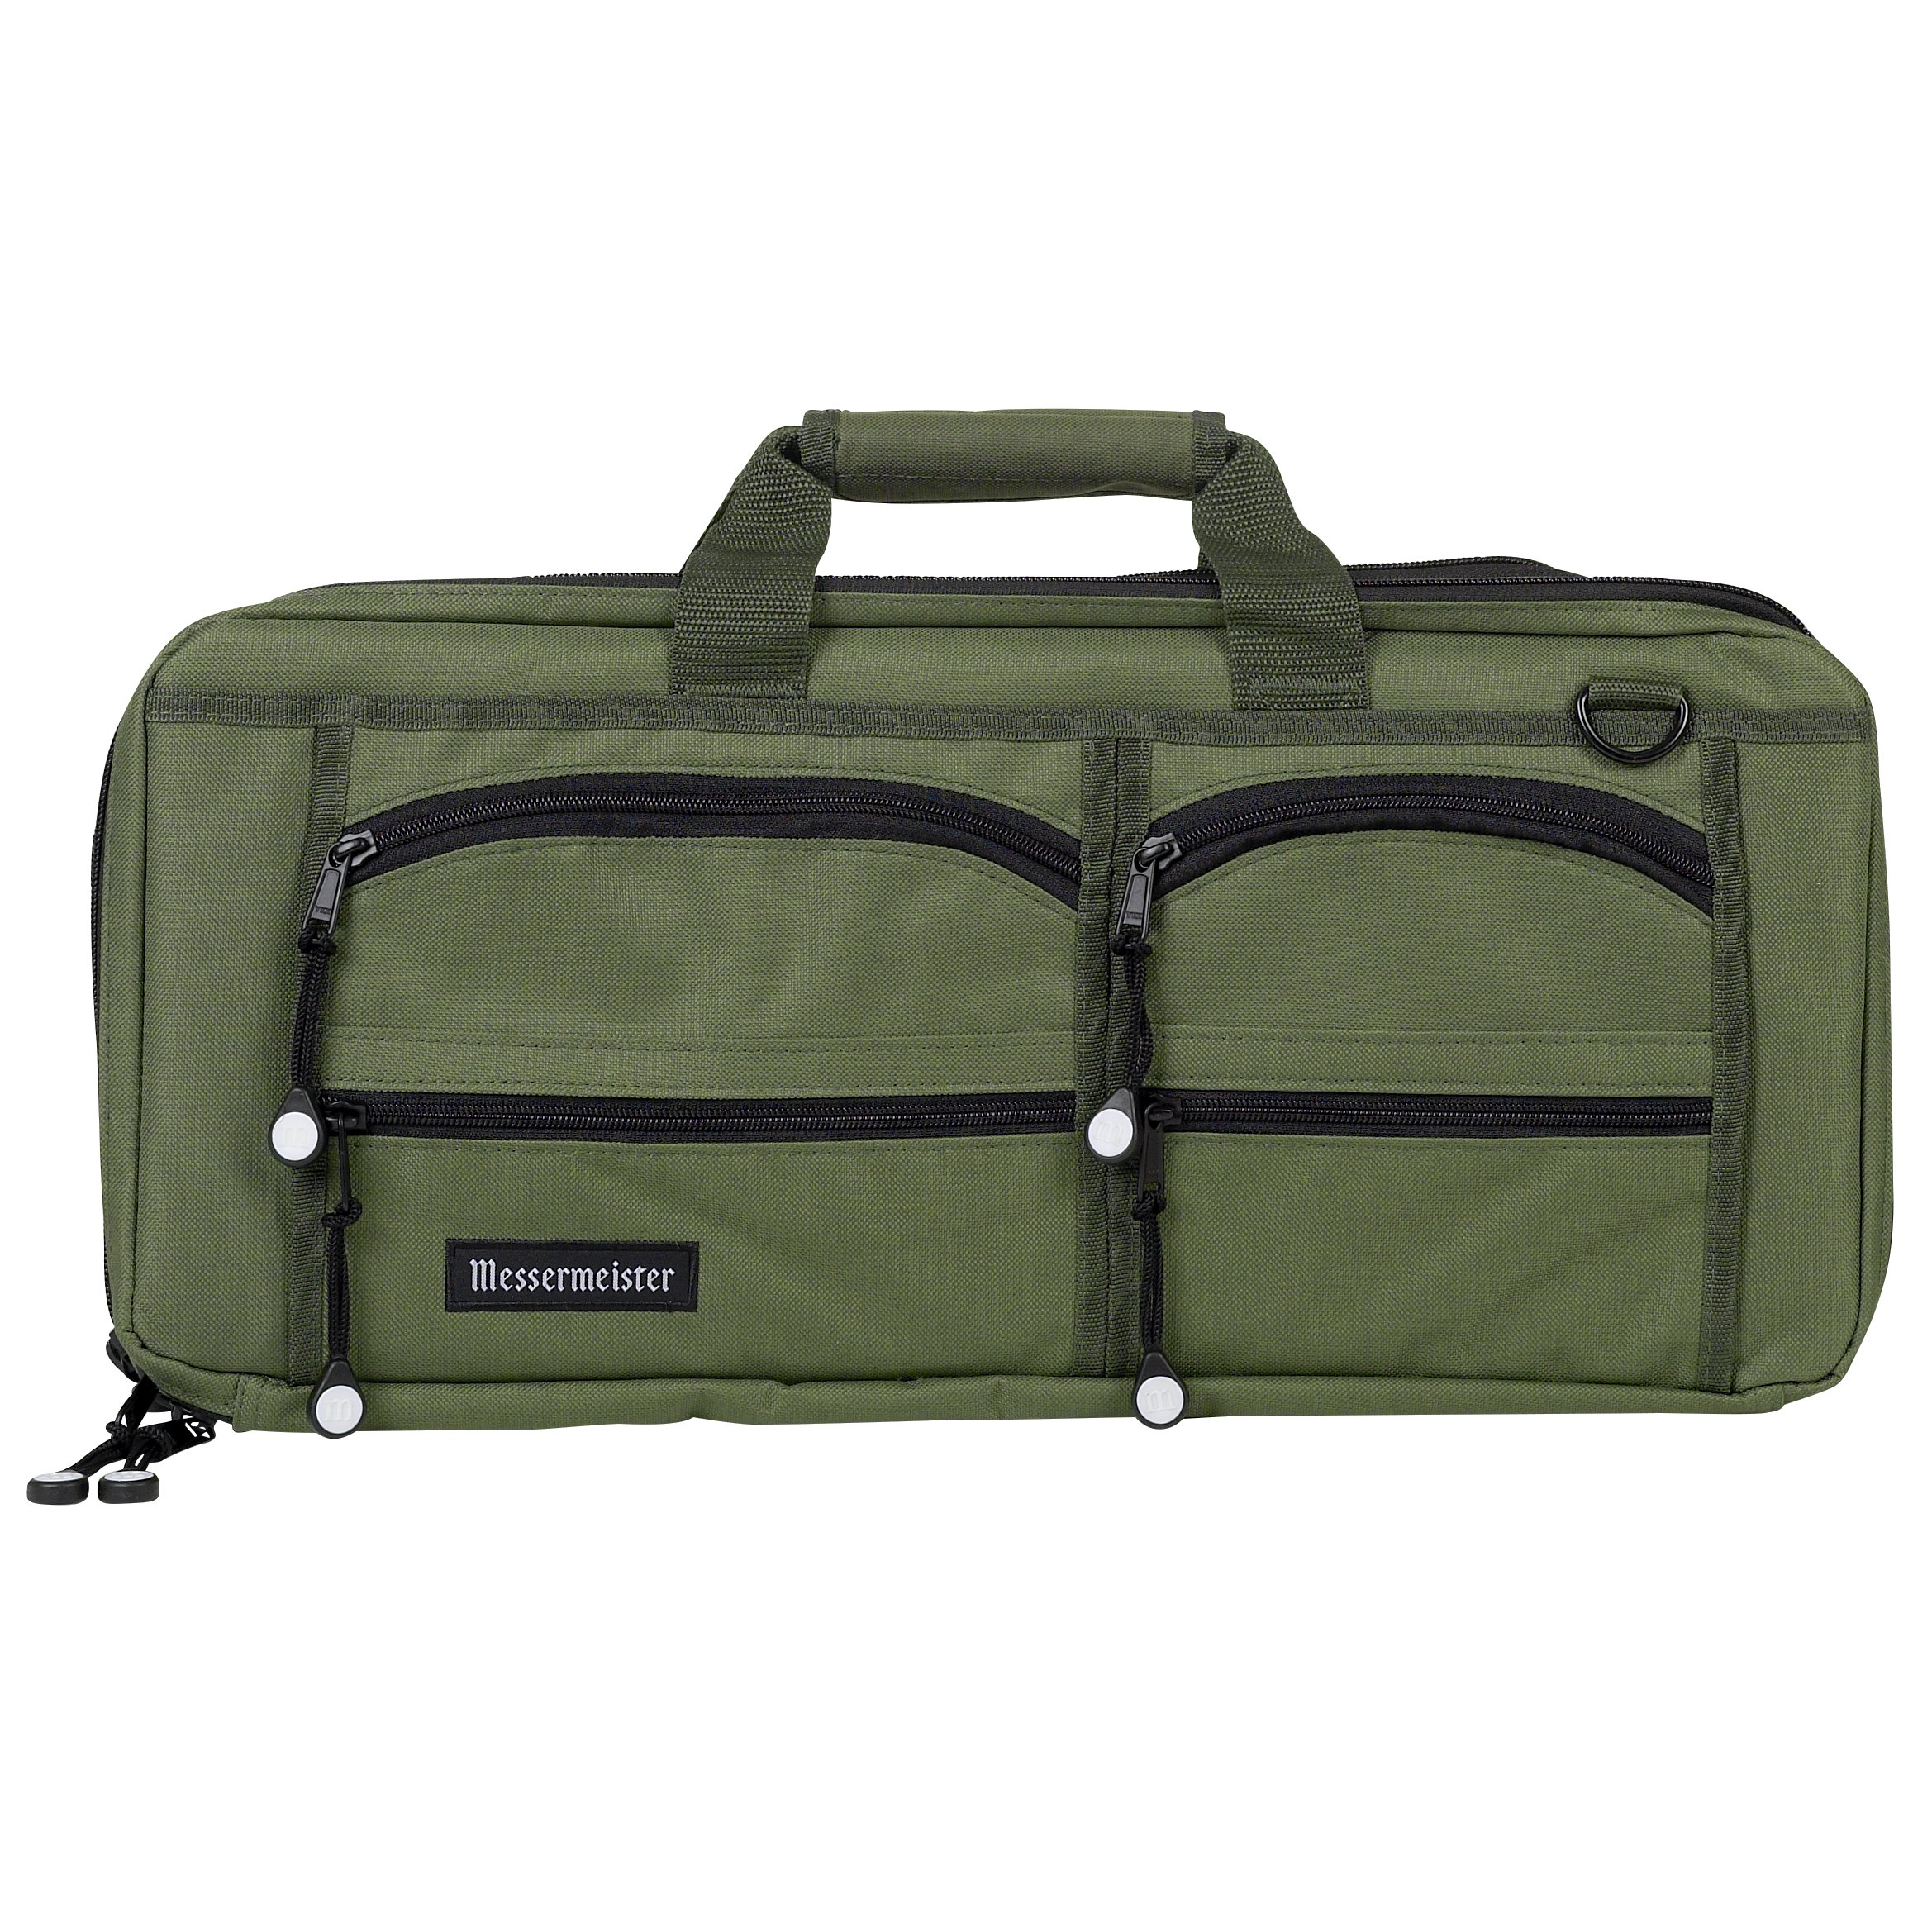 Messermeister 18-Pocket Heavy Duty Meister Chef Knife Bag, Luggage Grade and Water Resistant, Olive